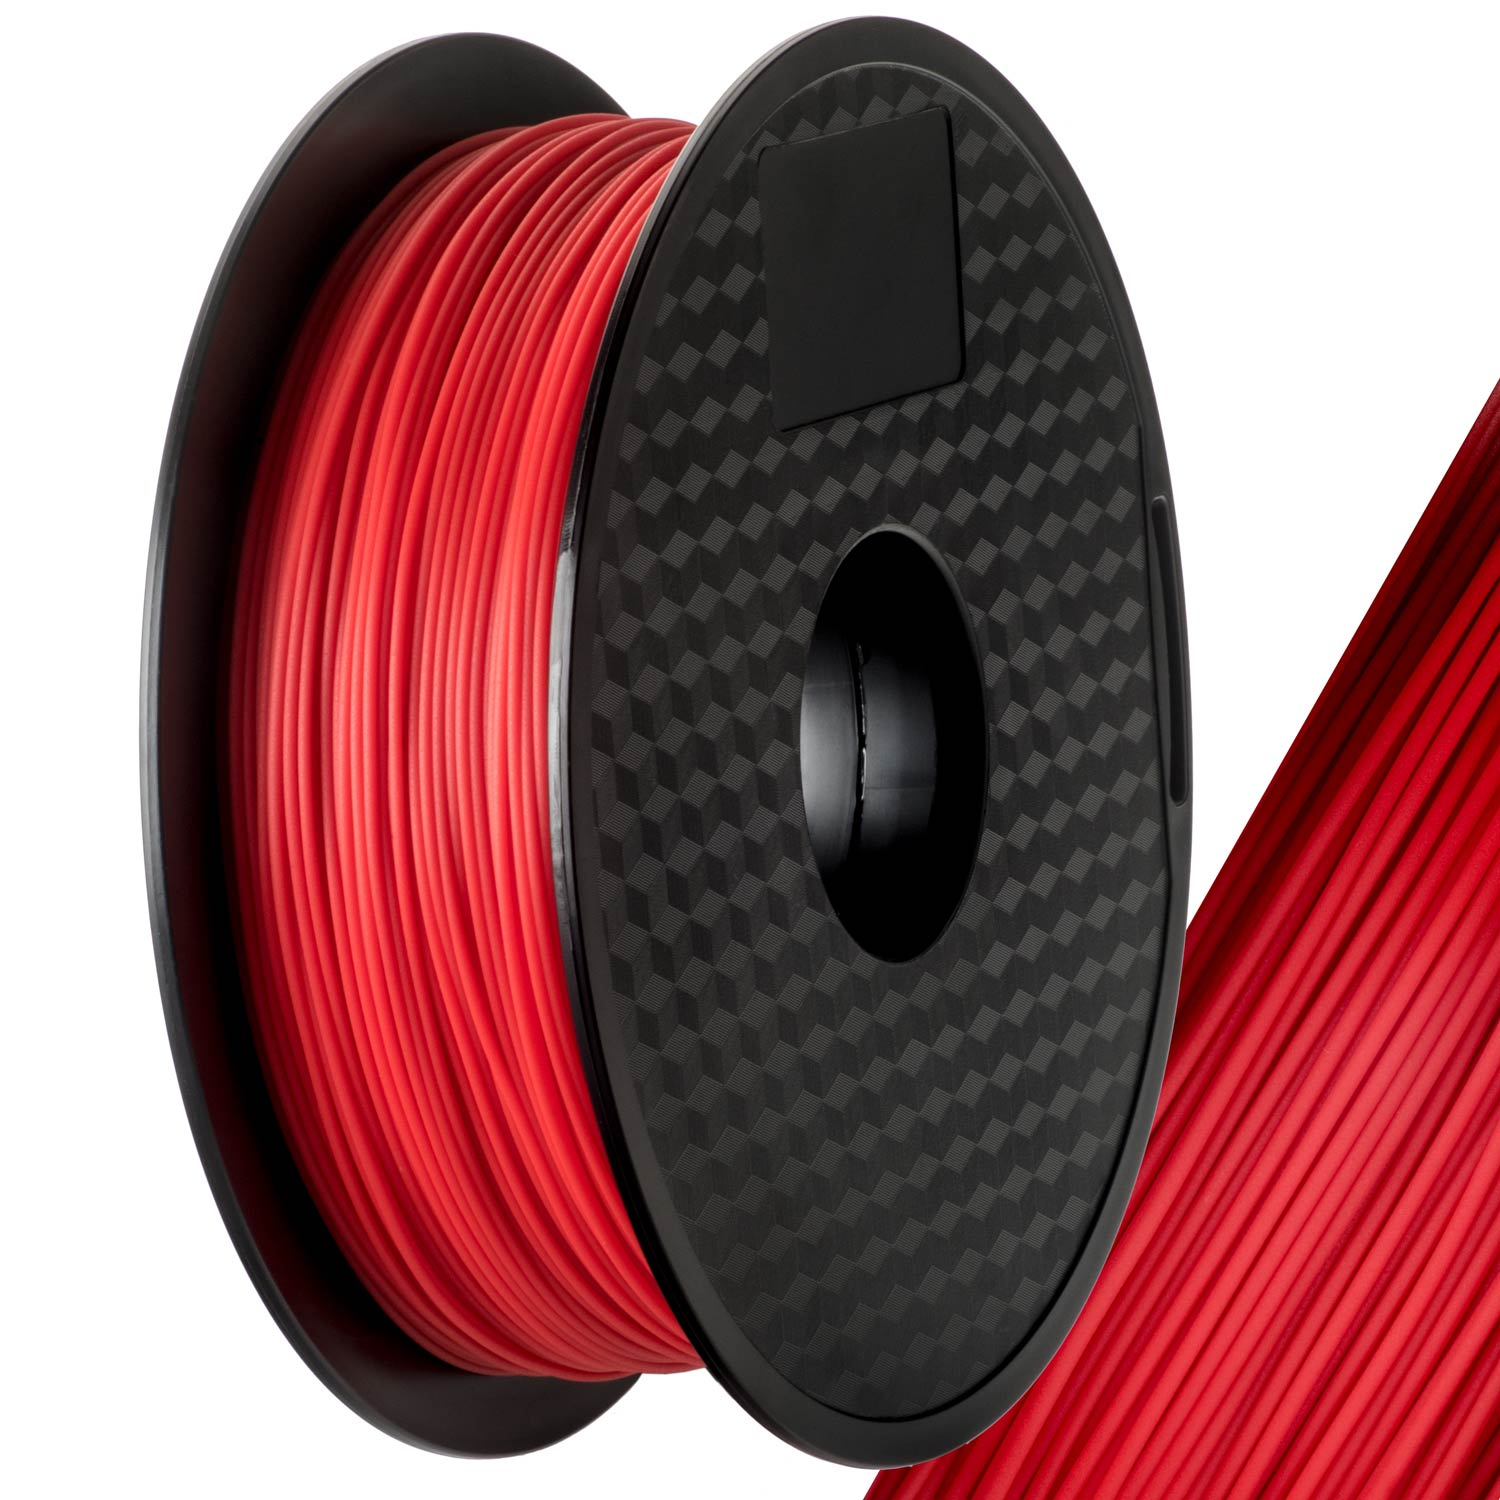 3d druck print pla filament rot spule f r 3d drucker 1kg 1 75mm spool red ebay. Black Bedroom Furniture Sets. Home Design Ideas